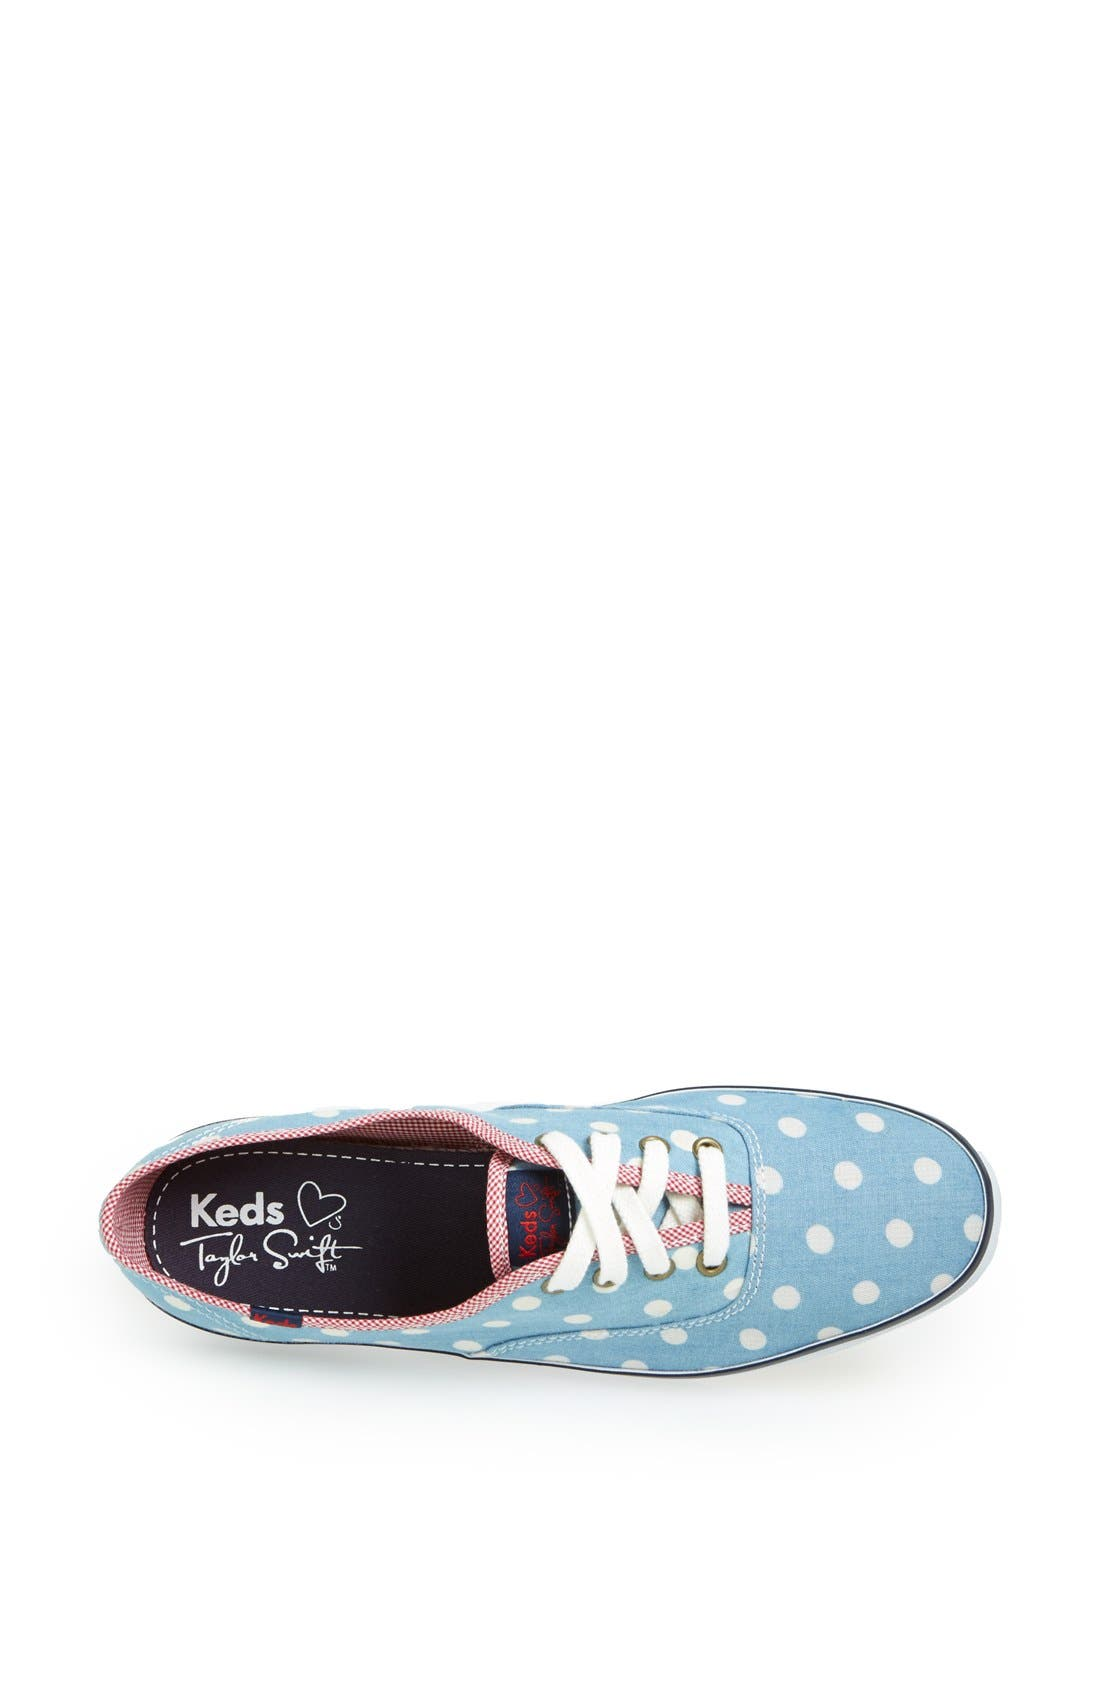 Alternate Image 3  - Keds® Taylor Swift 'Champion Polka Dot' Sneaker (Women)